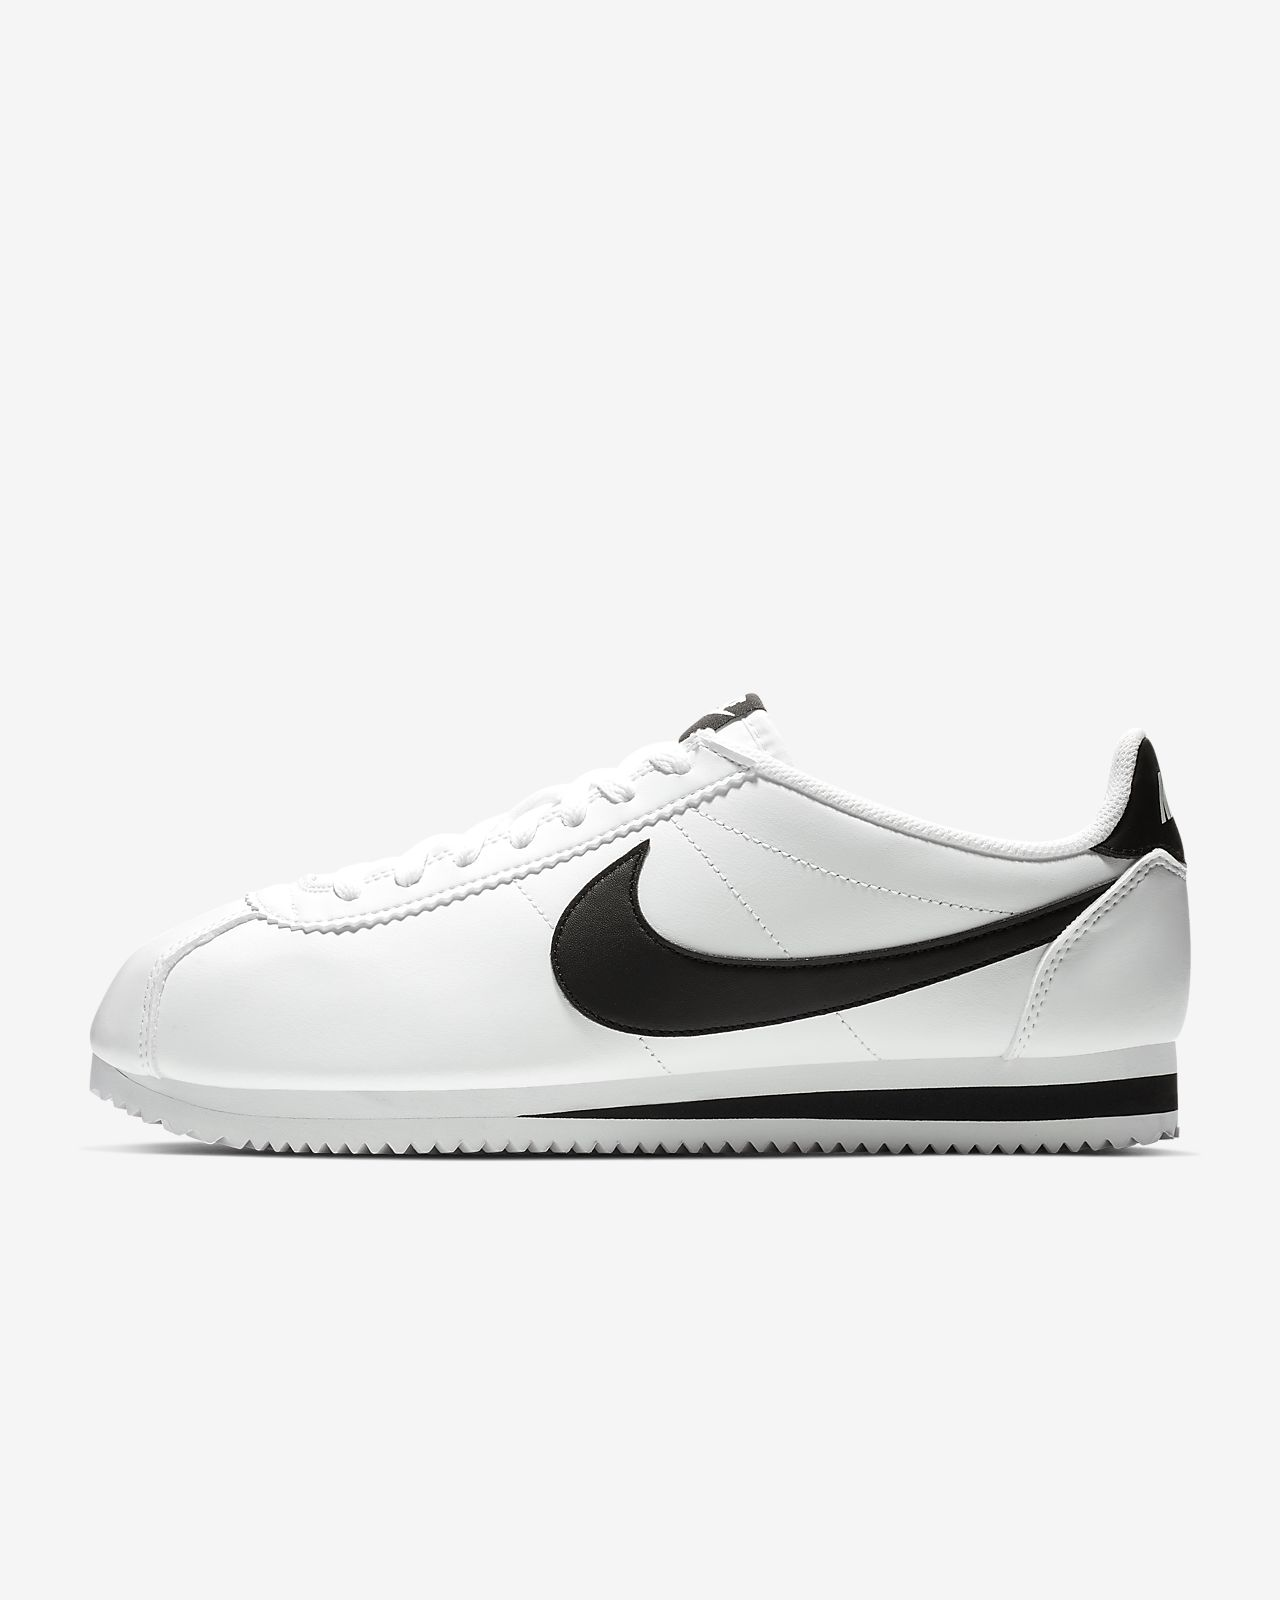 Nike Women's Classic Cortez Leather Athletic Sneakers Shoes Size US 6.5